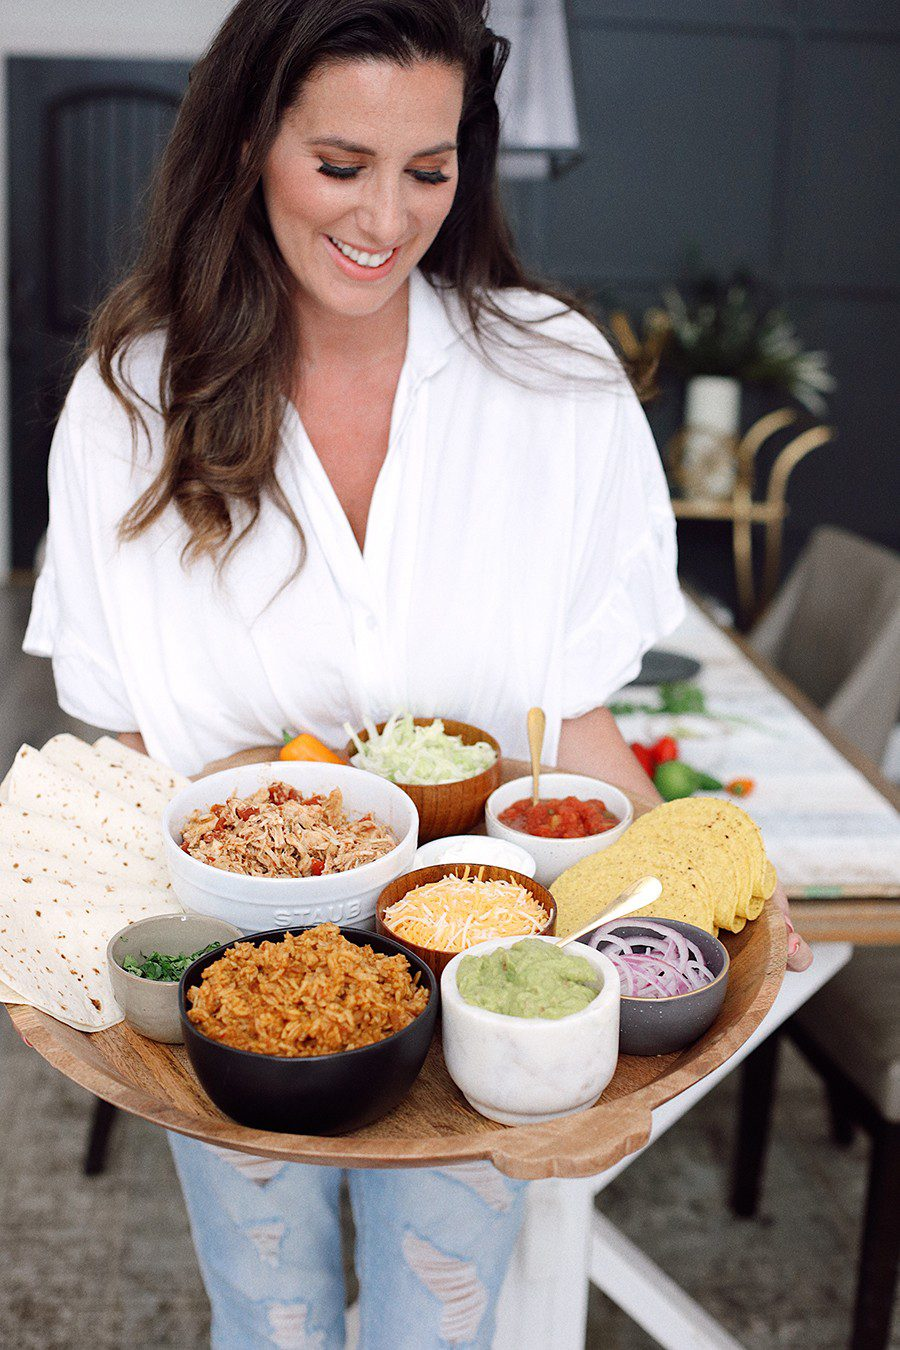 How to make an epic taco board and taco party platter tips! Plus, the best slow cooker taco chicken recipe! | Chicken Tacos by popular Florida lifestyle blog, Fresh Mommy Blog: image of Tabitha Blue holding a Chicken Tacos platter.